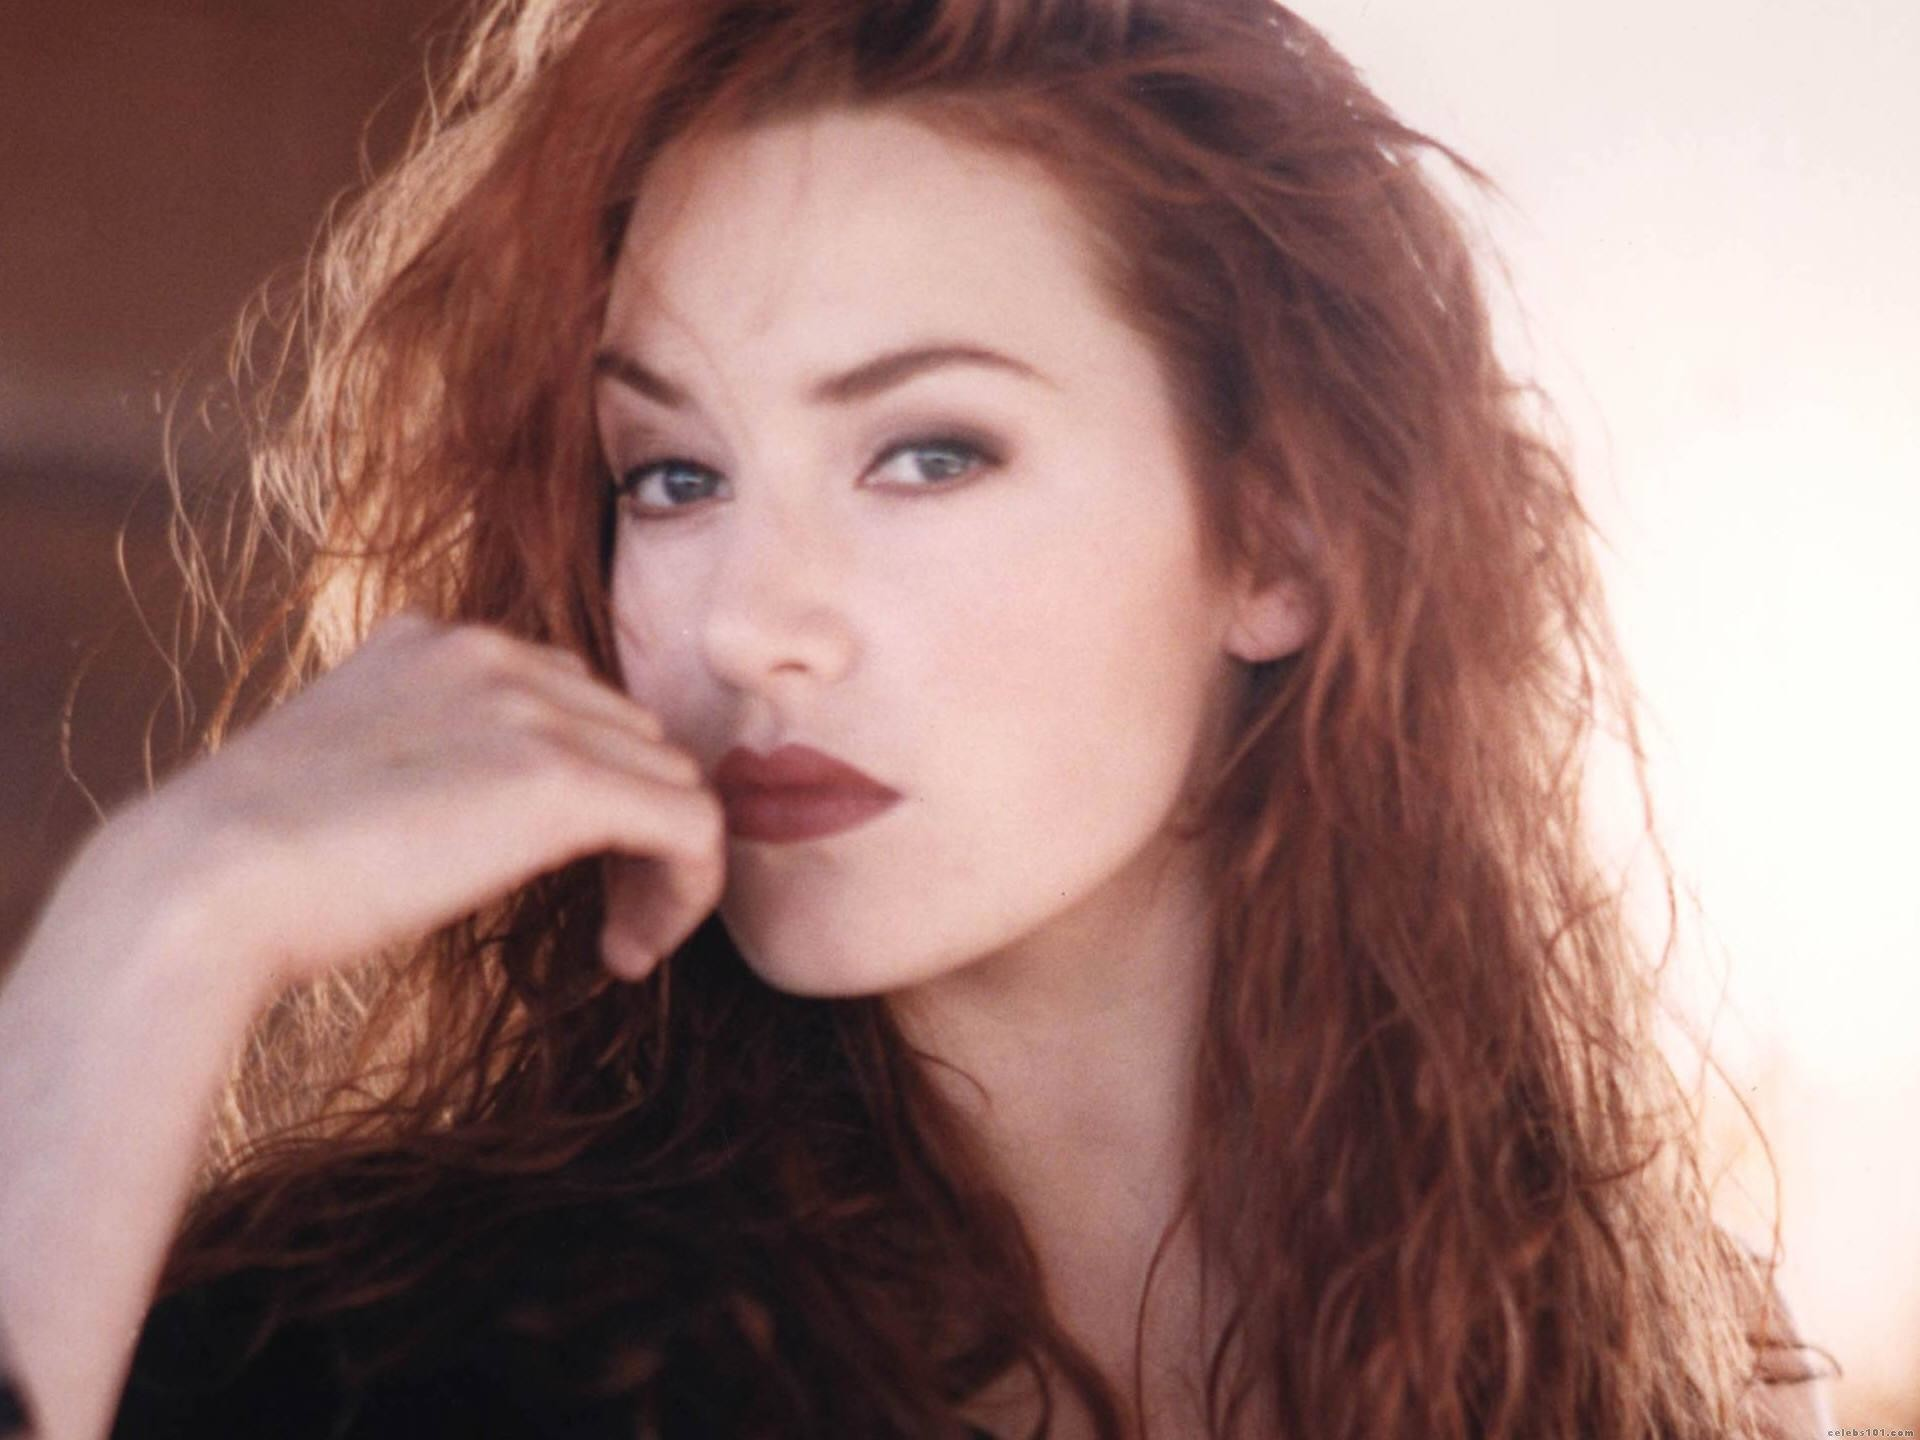 Kate Winslet and her red hair from Titanic